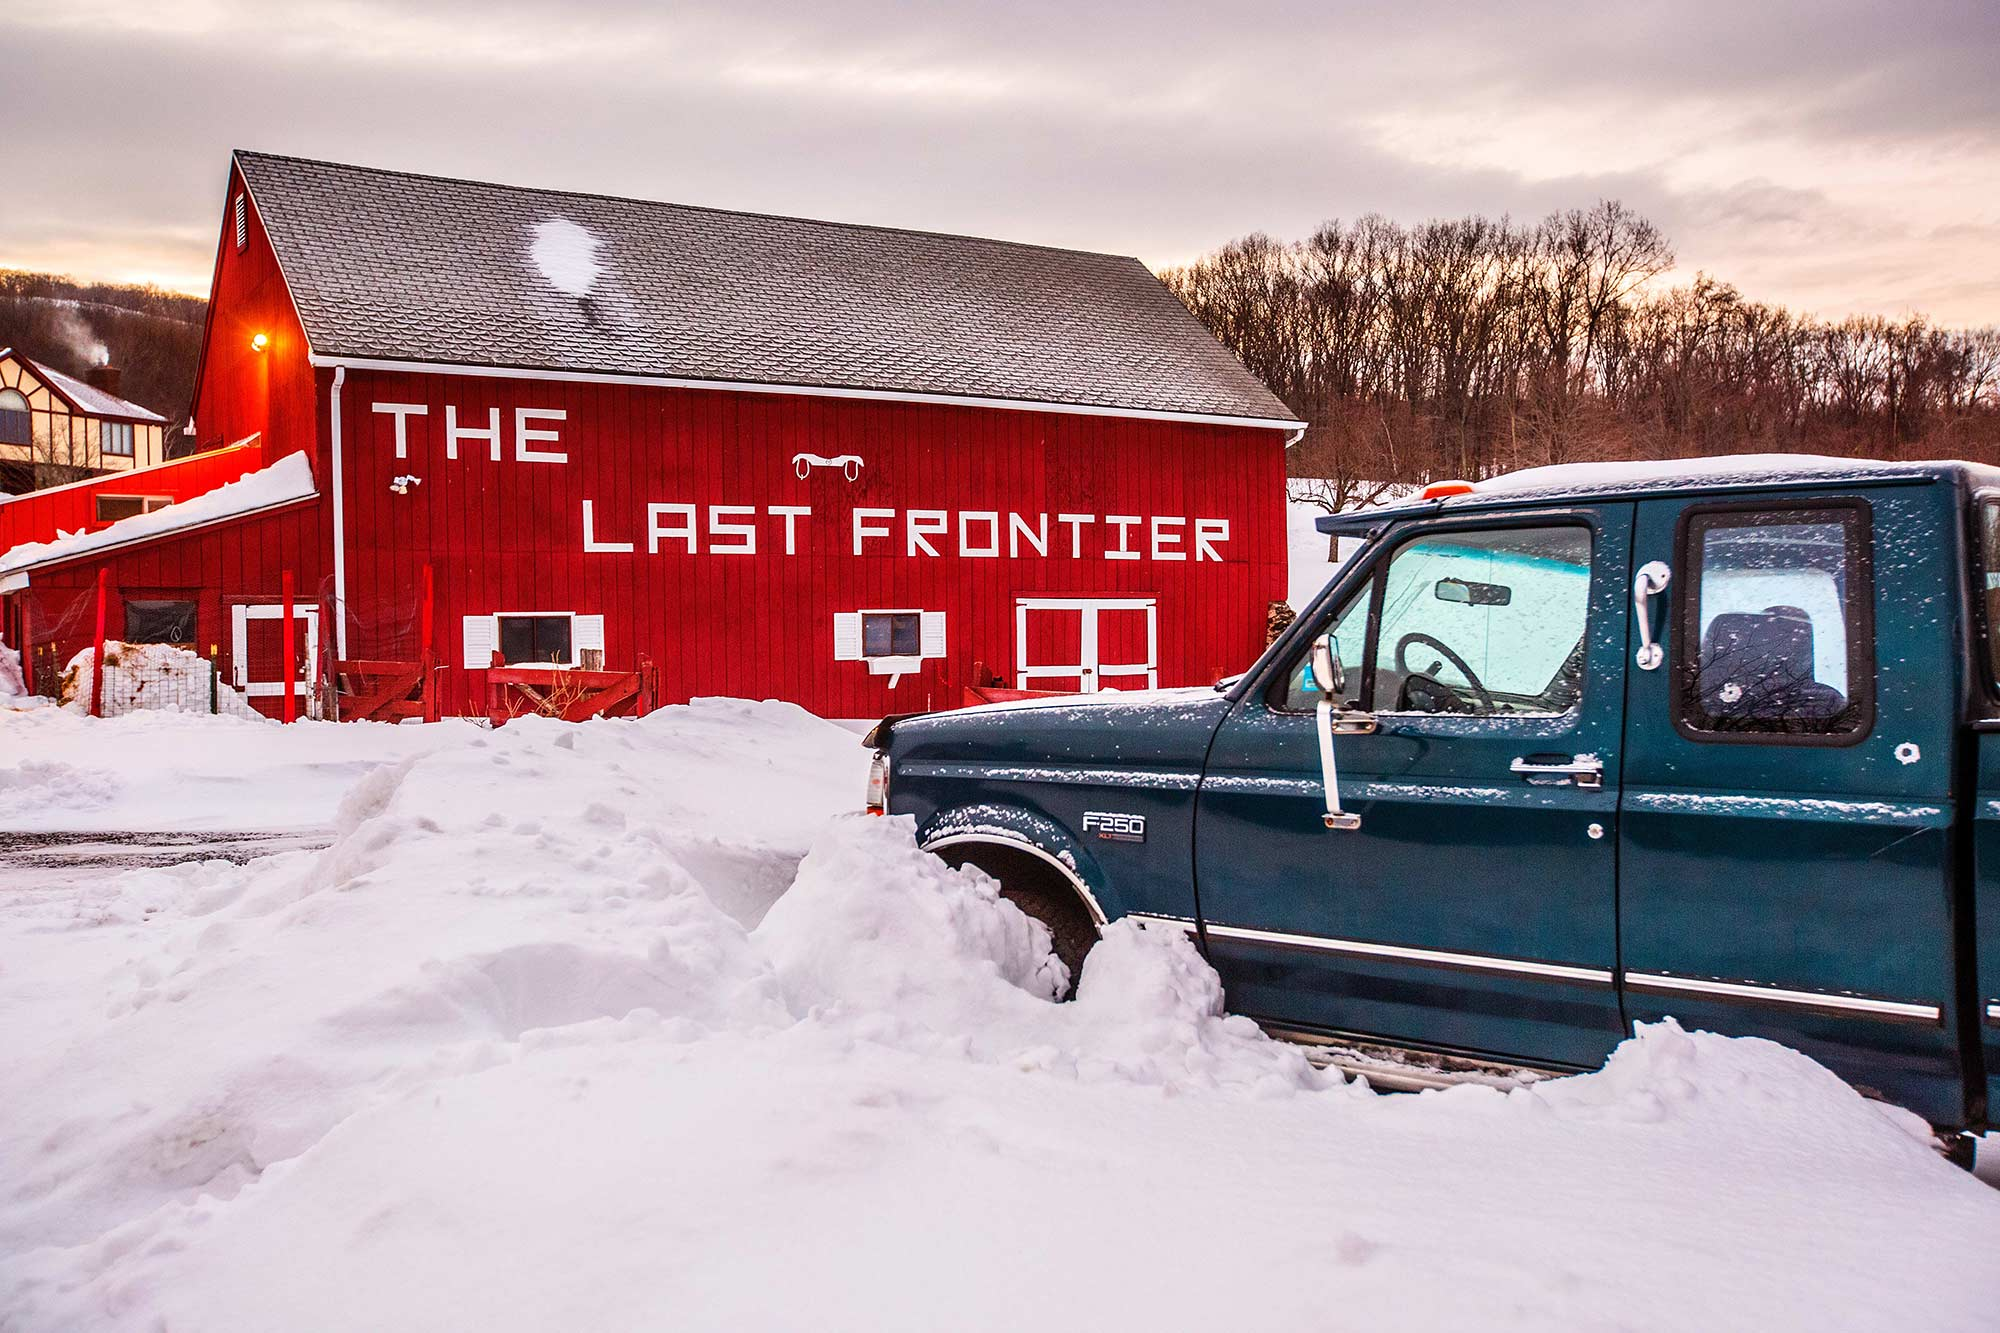 """The Last Frontier"", Southington, CT - 2/12/15"